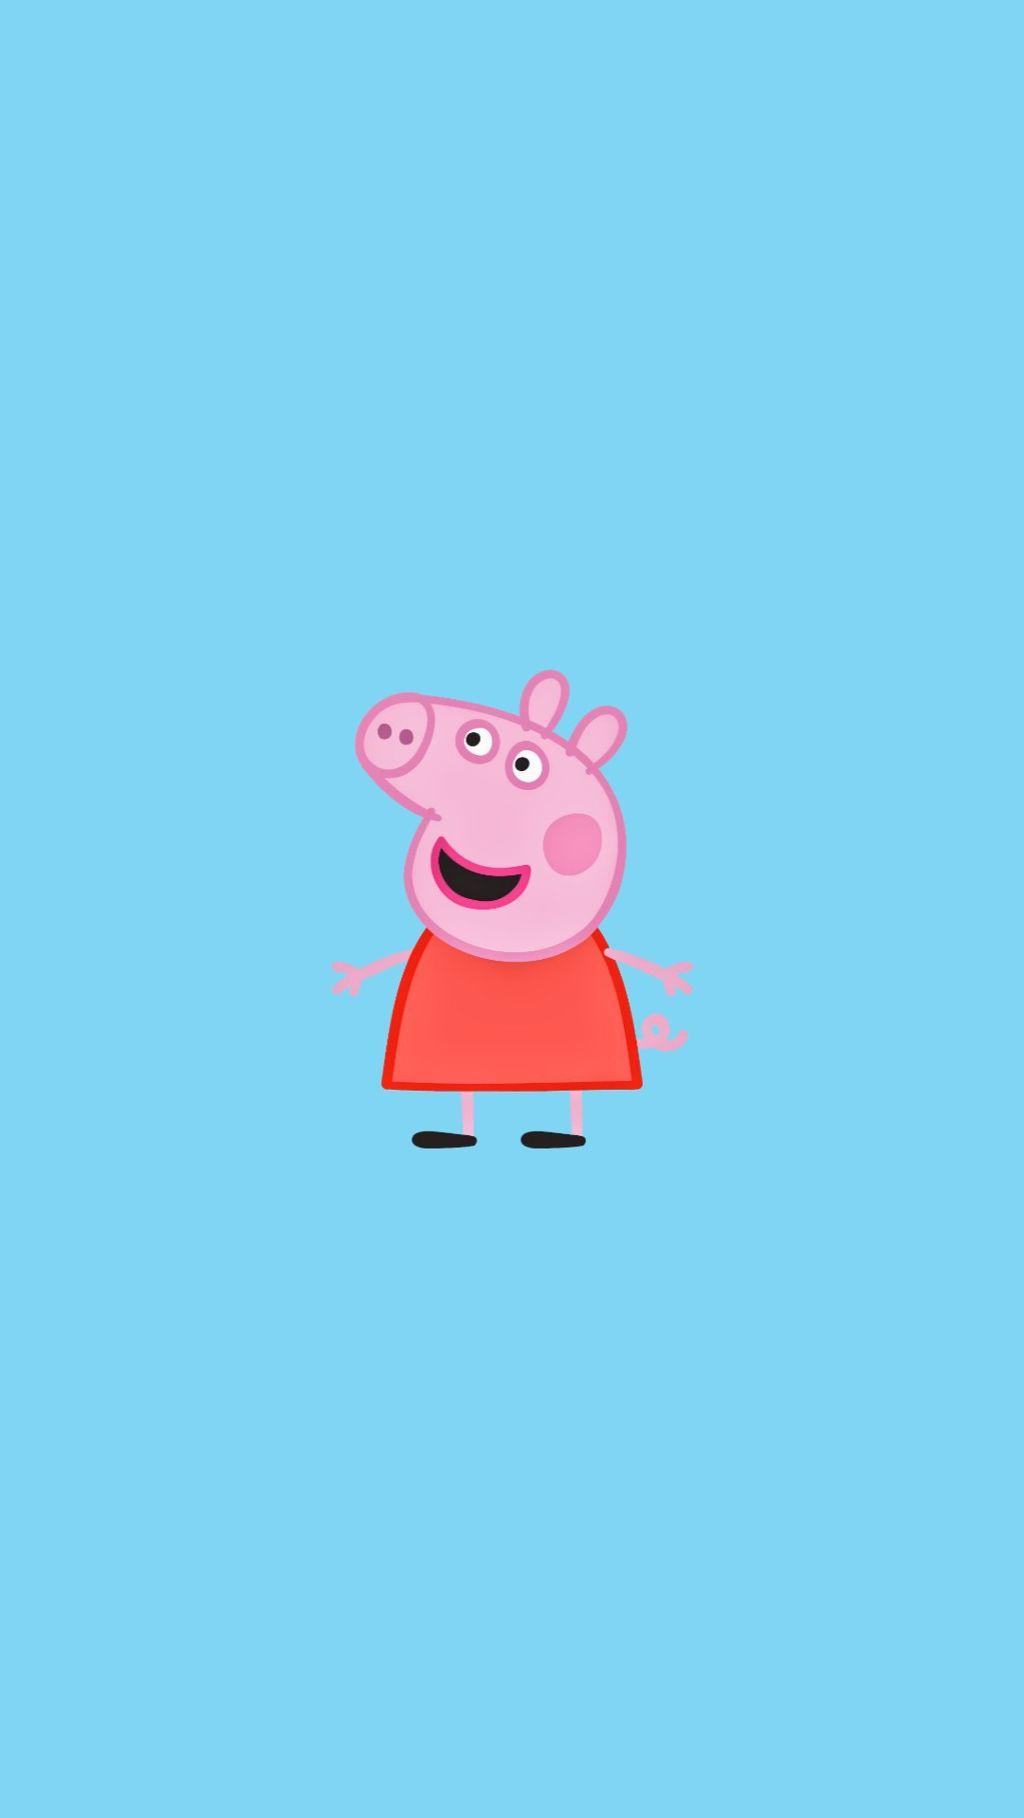 peppa pig peppapig backgrounds wallpapers tumblr pinteres